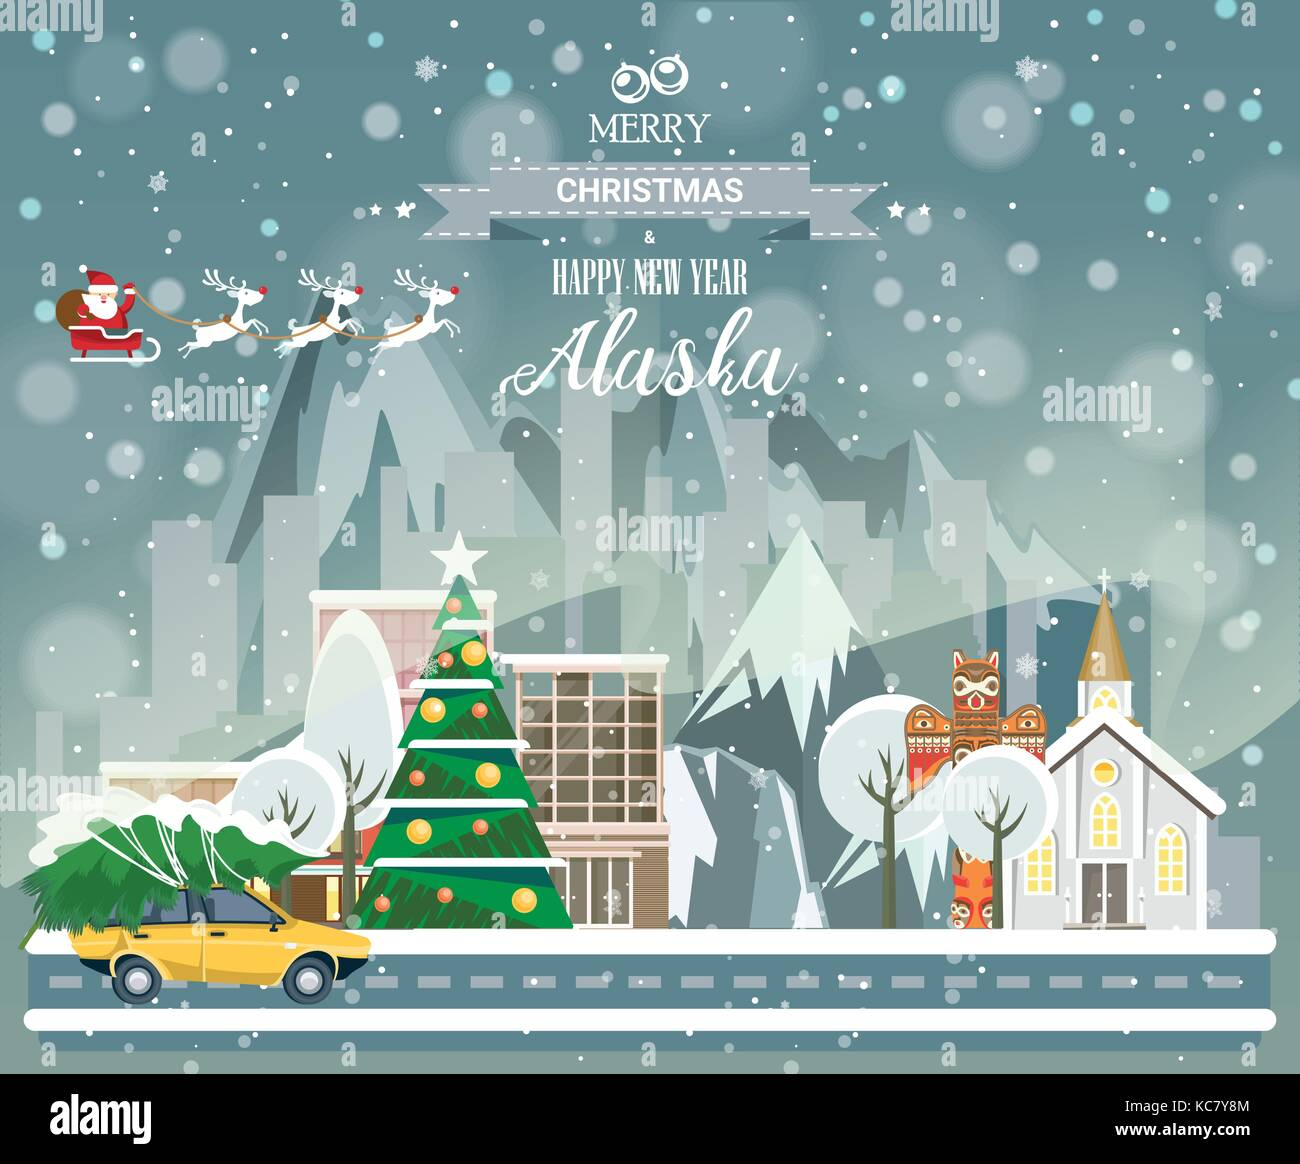 Christmas Greeting Card Poster In Flat Style Merry Christmas And